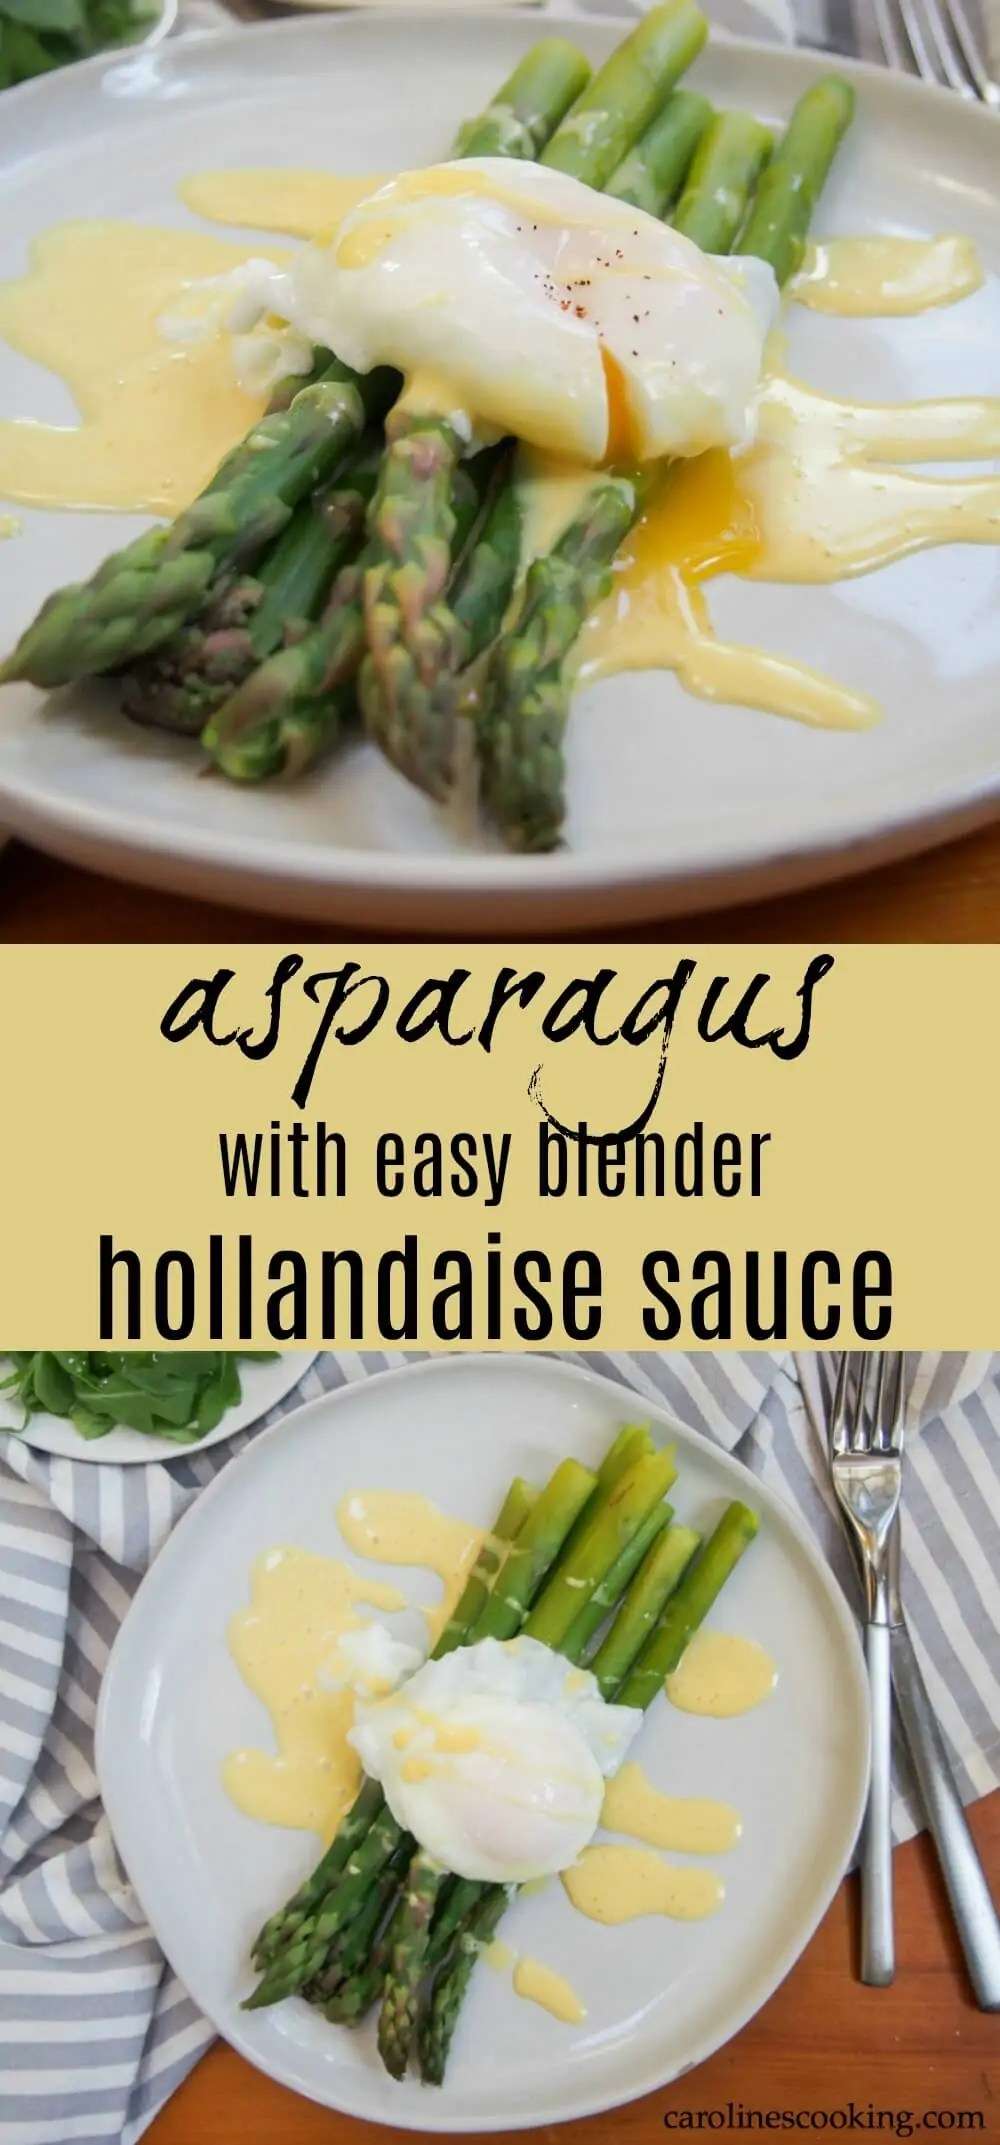 Asparagus with easy blender hollandaise sauce and poached egg makes an easy and delicious breakfast/brunch or lunch. Full of the tastes of spring, it's light but feels that bit indulgent. #ad #brunchweek #asparagus #brunch #hollandaise #vegetarian